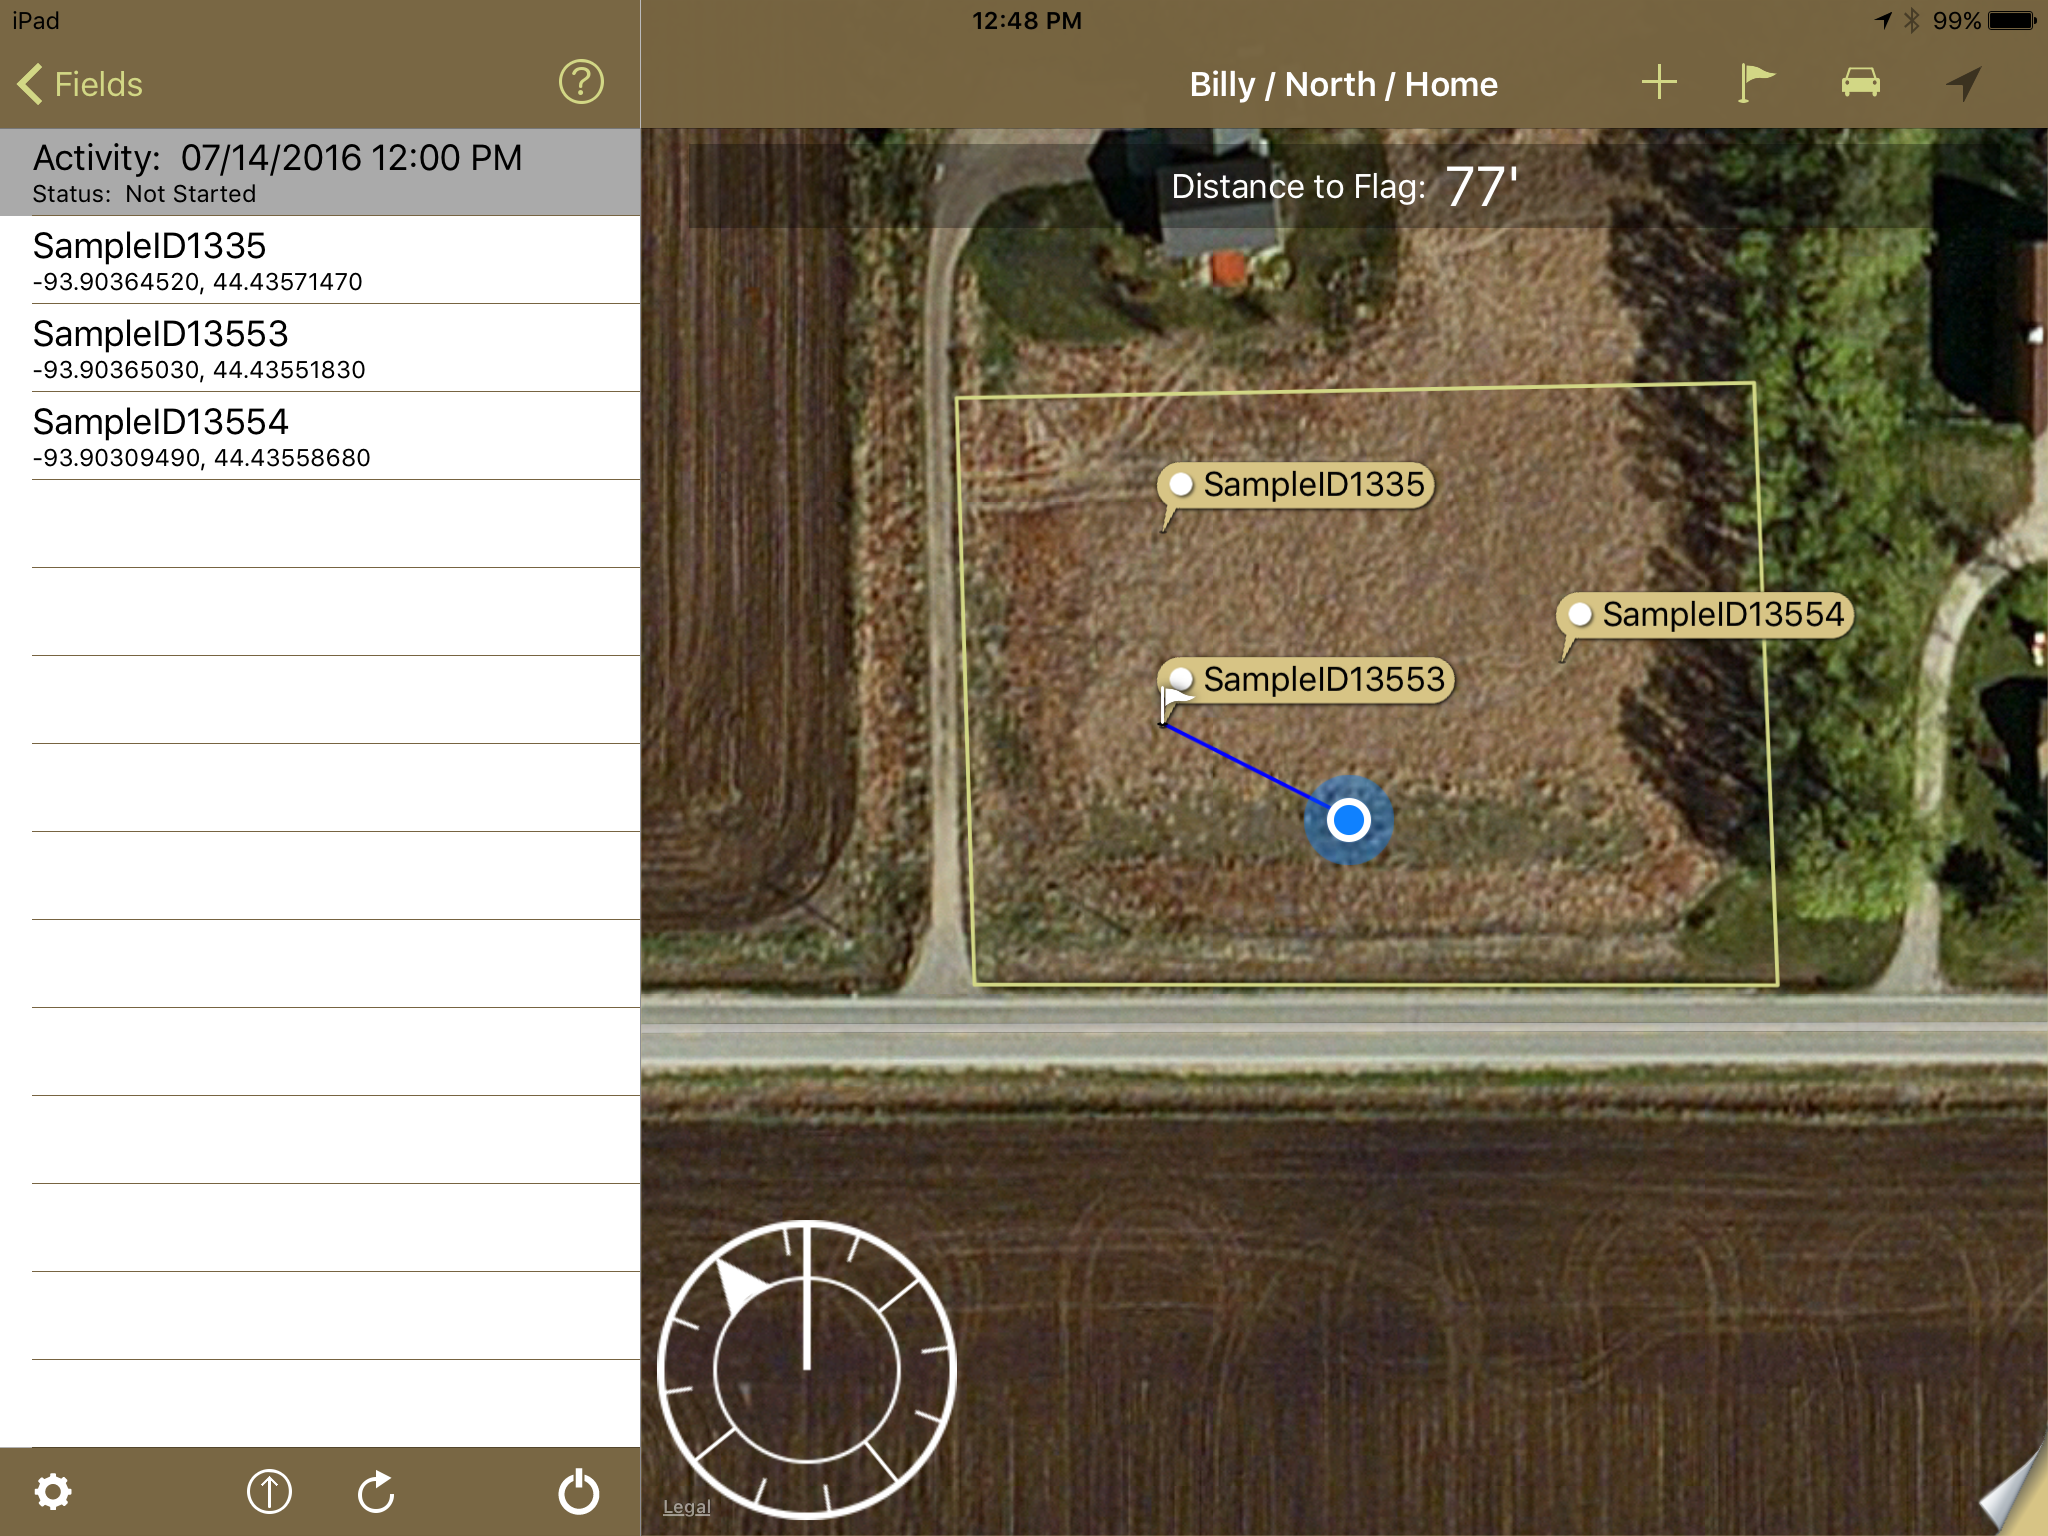 Sampling app navigation dial on iPad